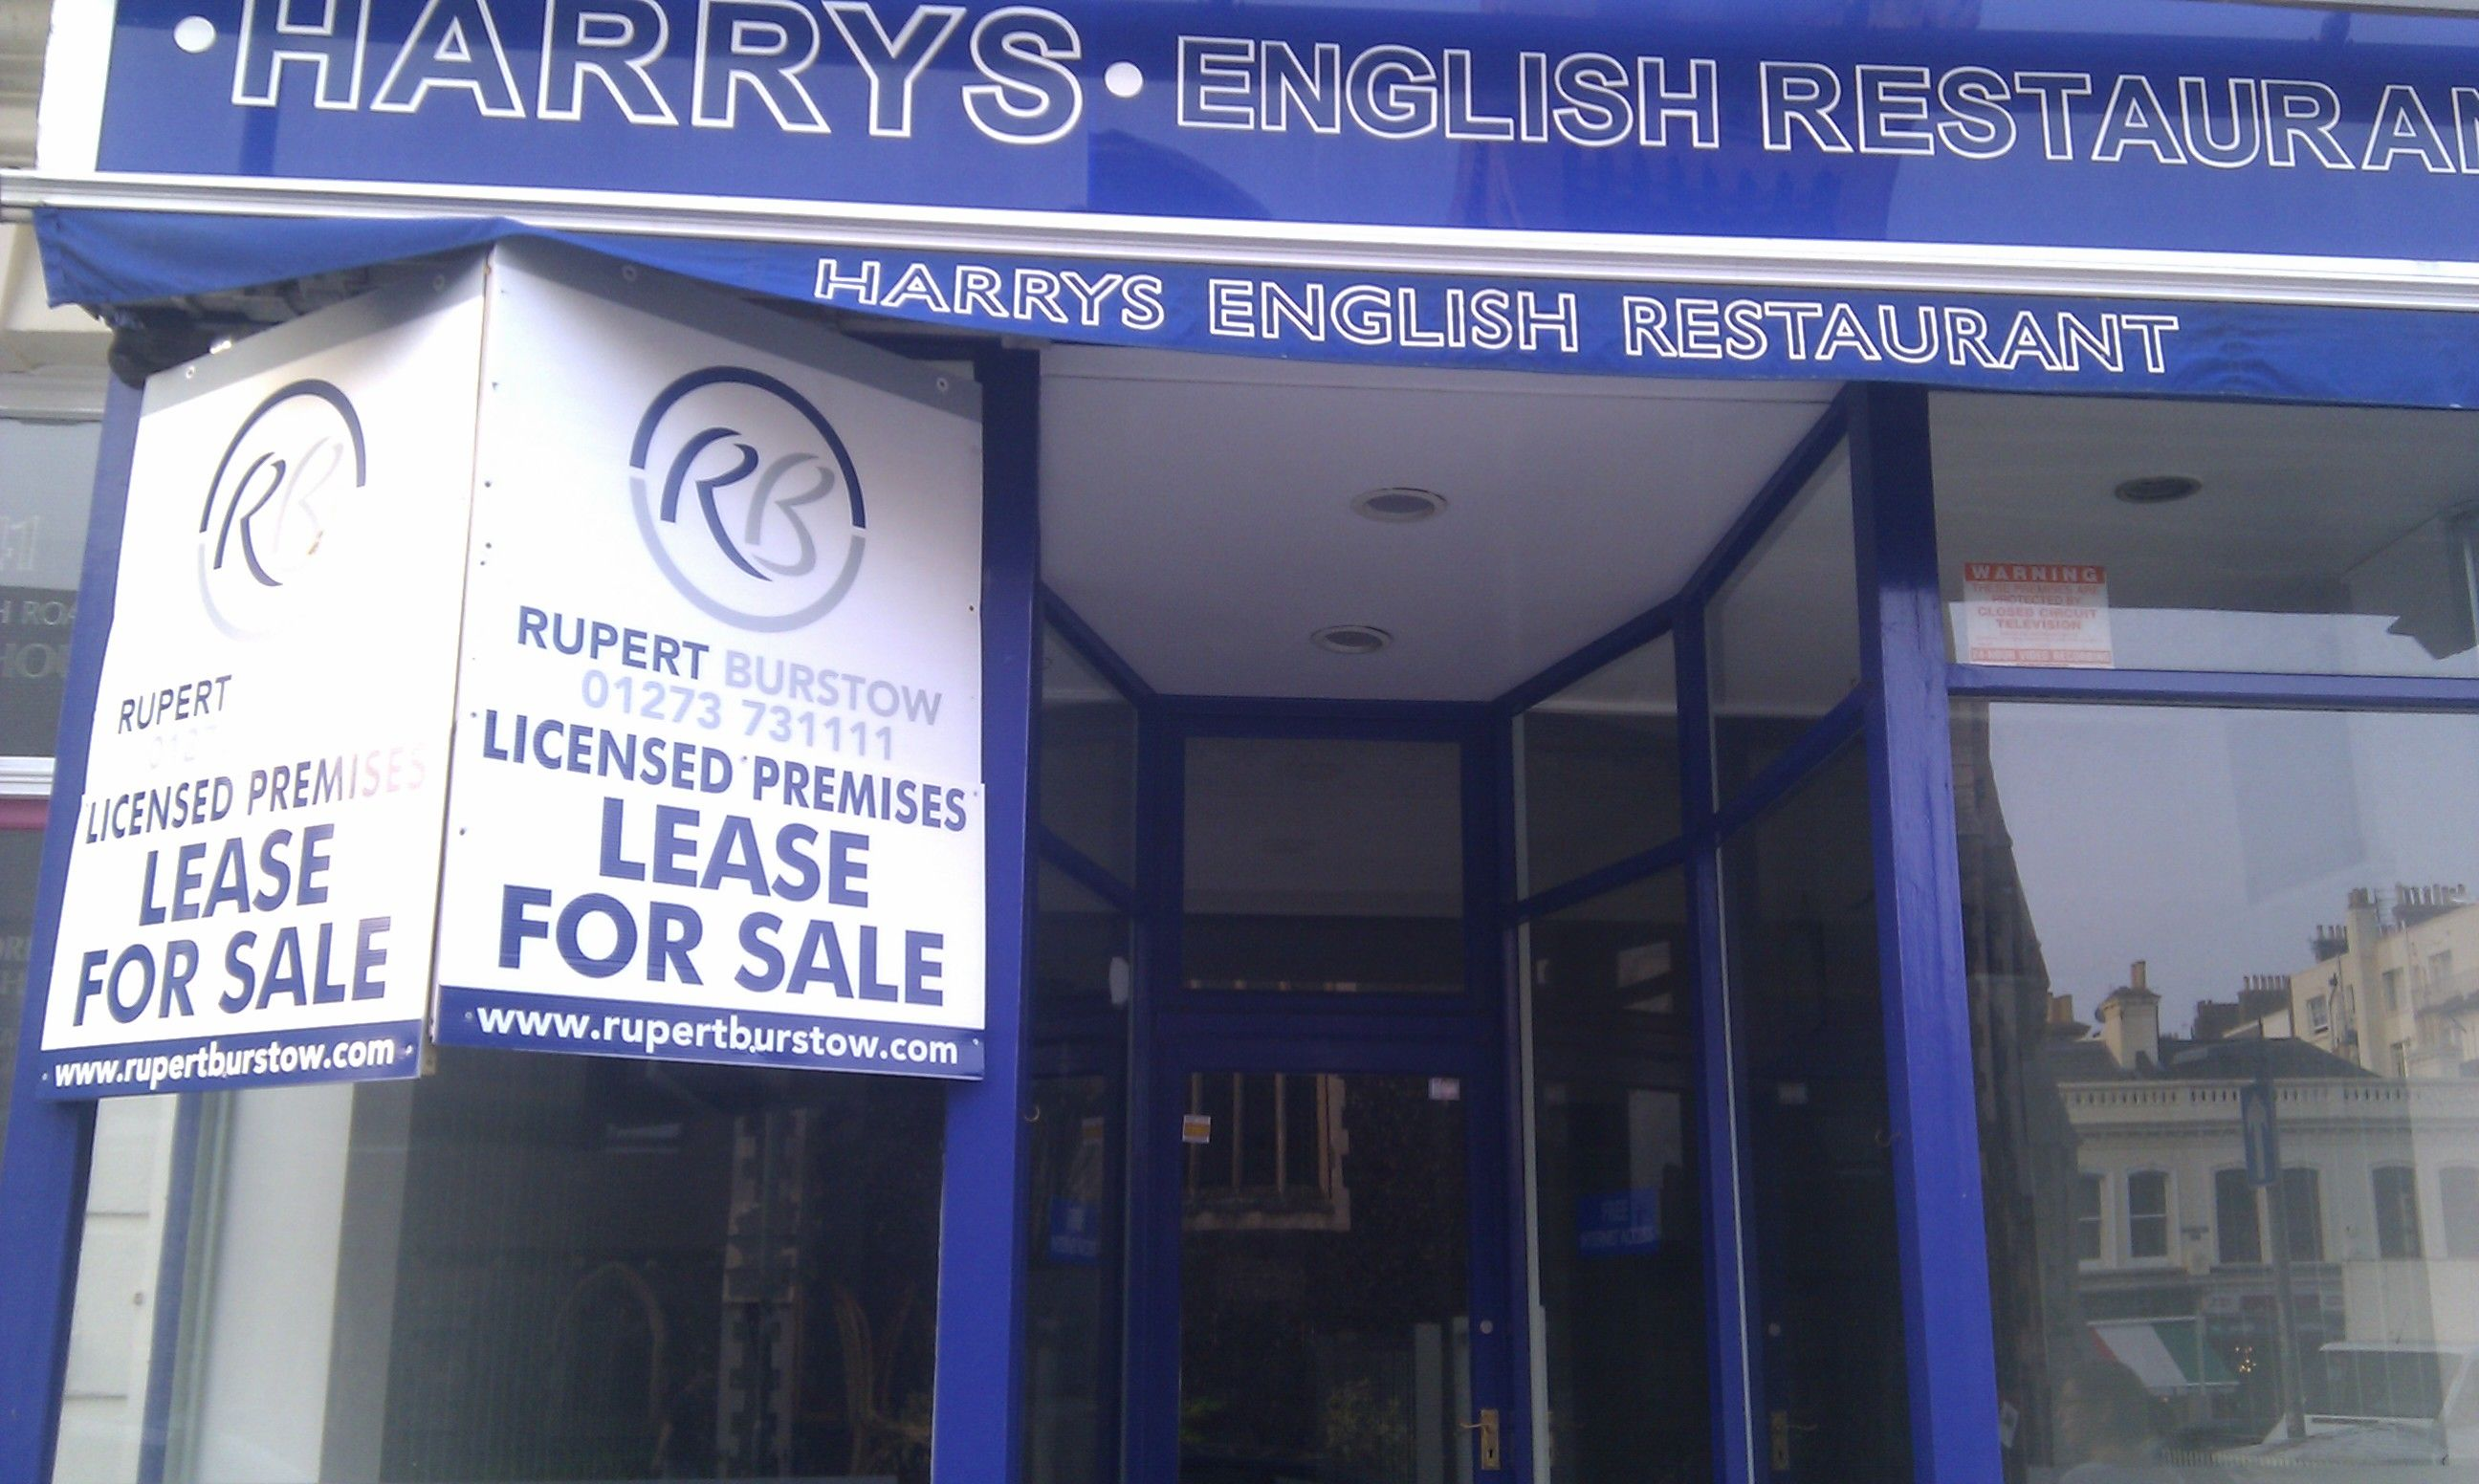 The end of an institution; Harry's closes down. Sad days :(